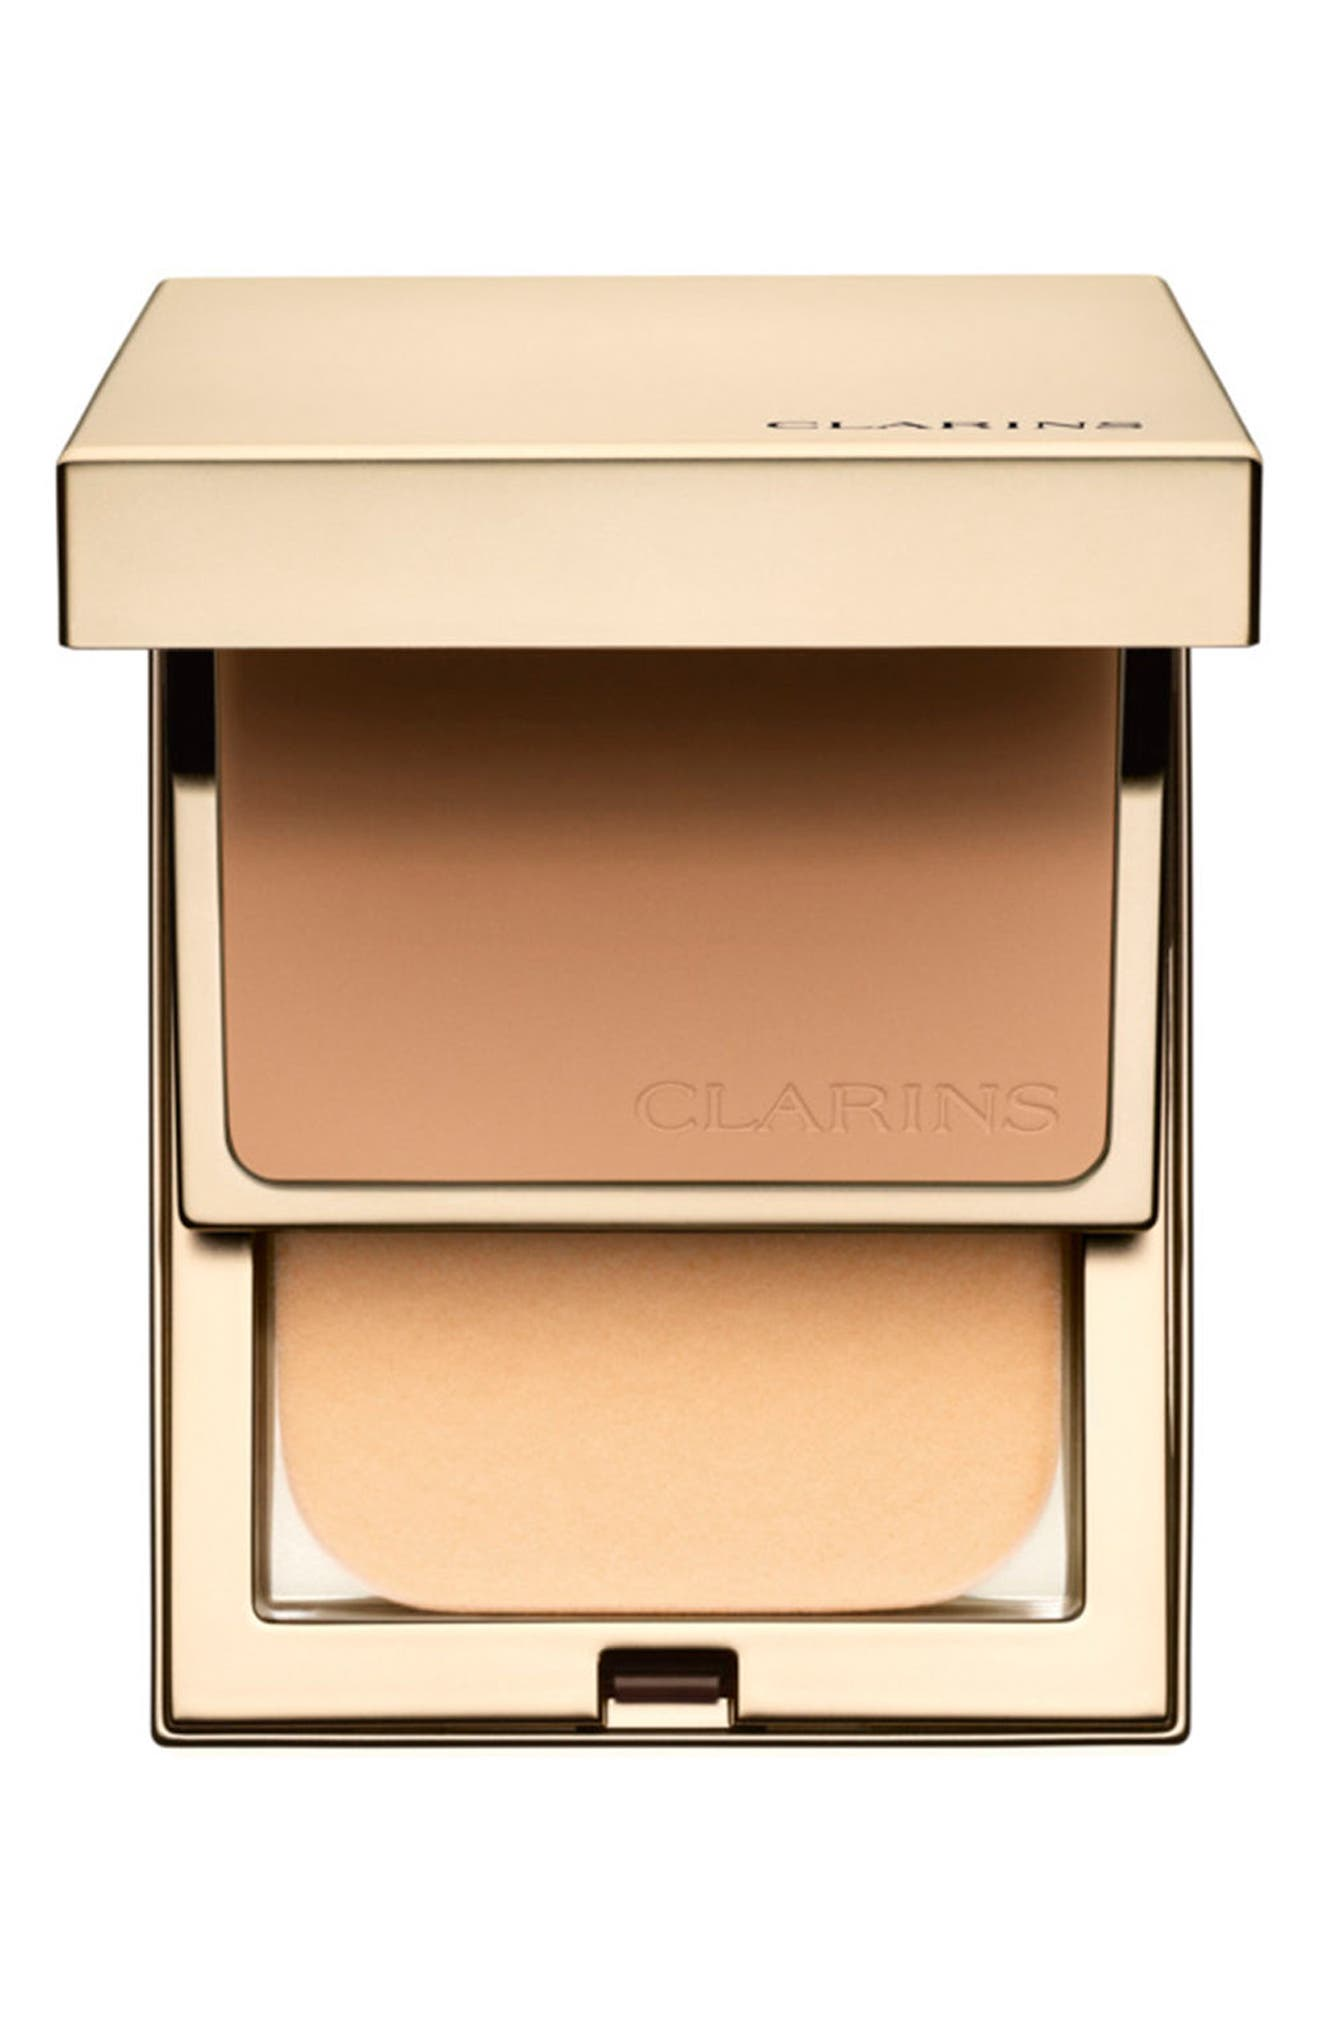 Alternate Image 1 Selected - Clarins Everlasting Compact Foundation SPF 9